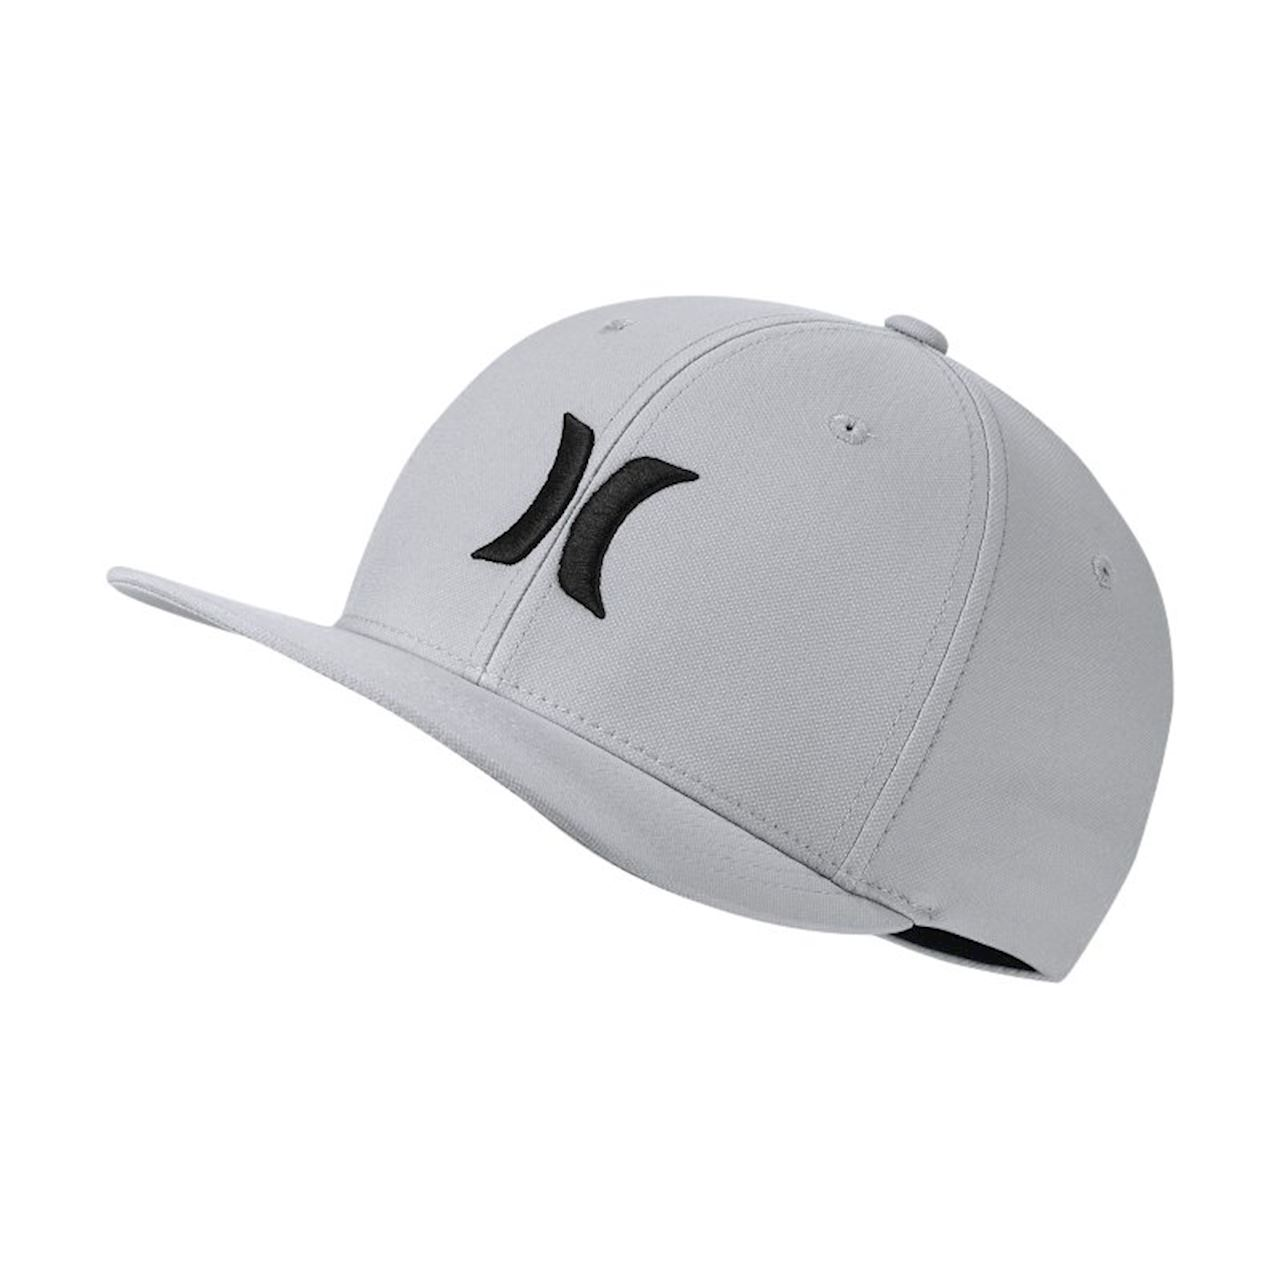 Hurley Dri-Fit One and Only Hat - Grey